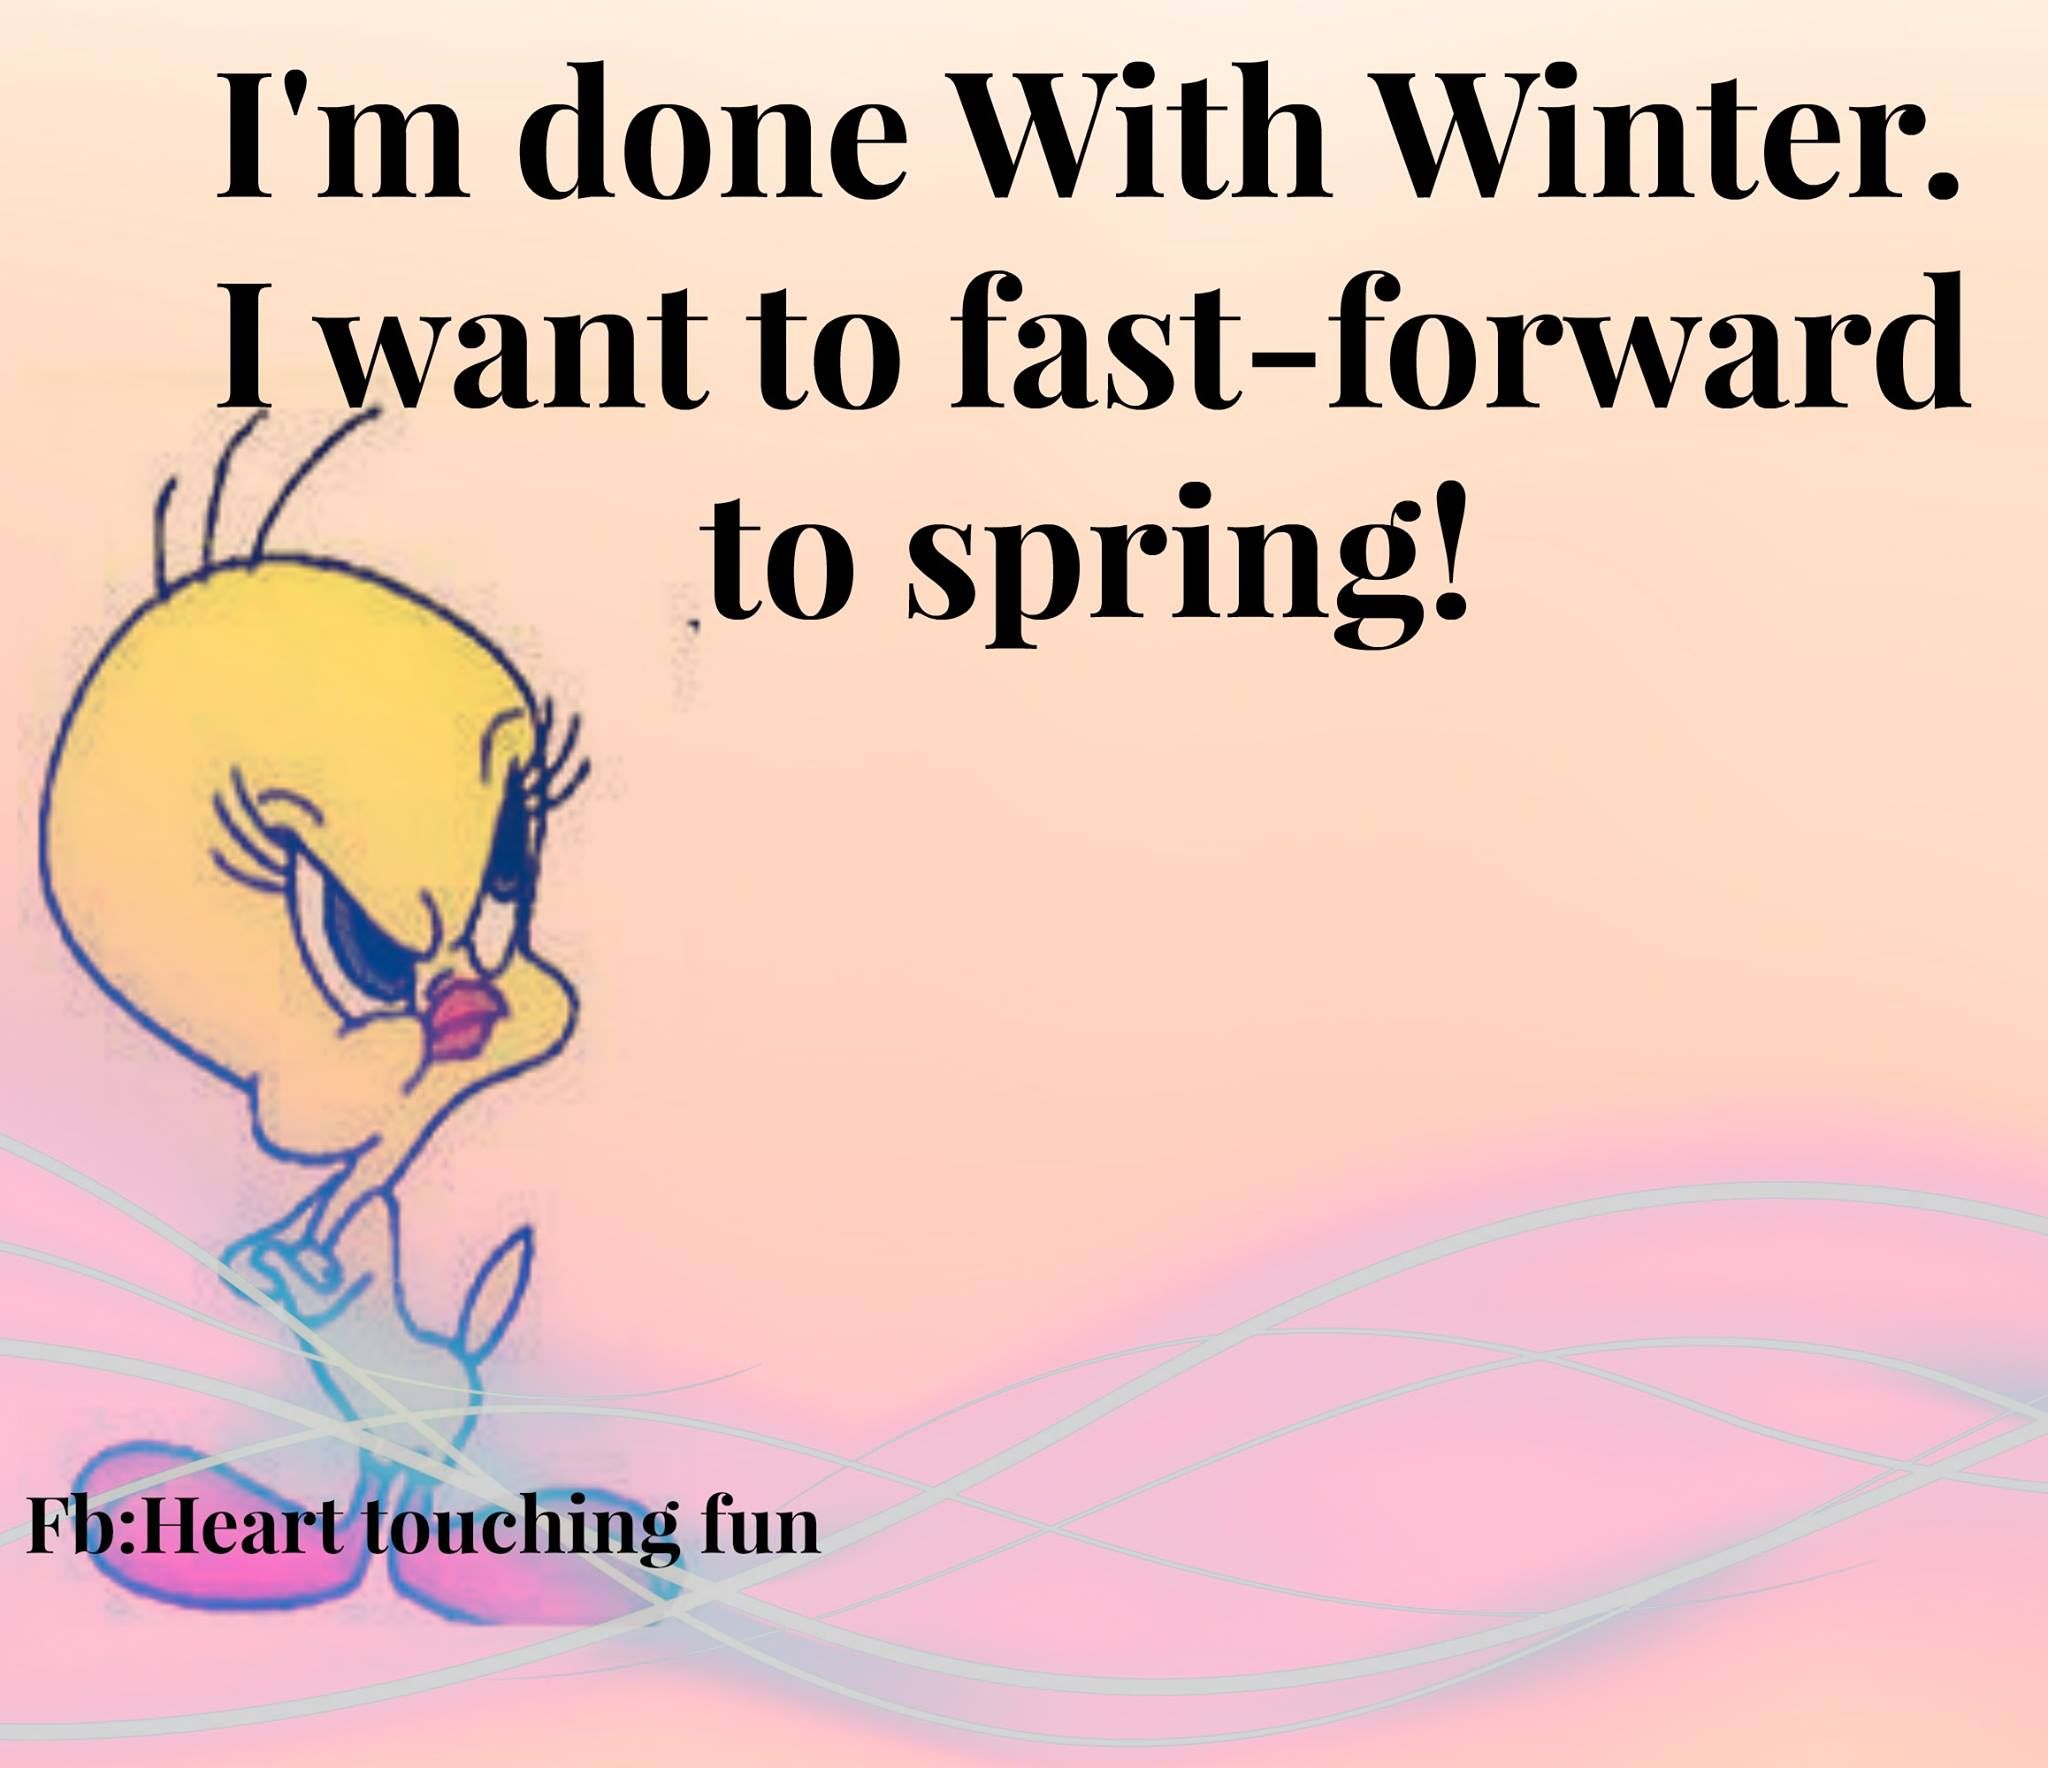 I Am Done With Winter Pictures, Photos, and Images for ... Funny Winter Quotes For Facebook